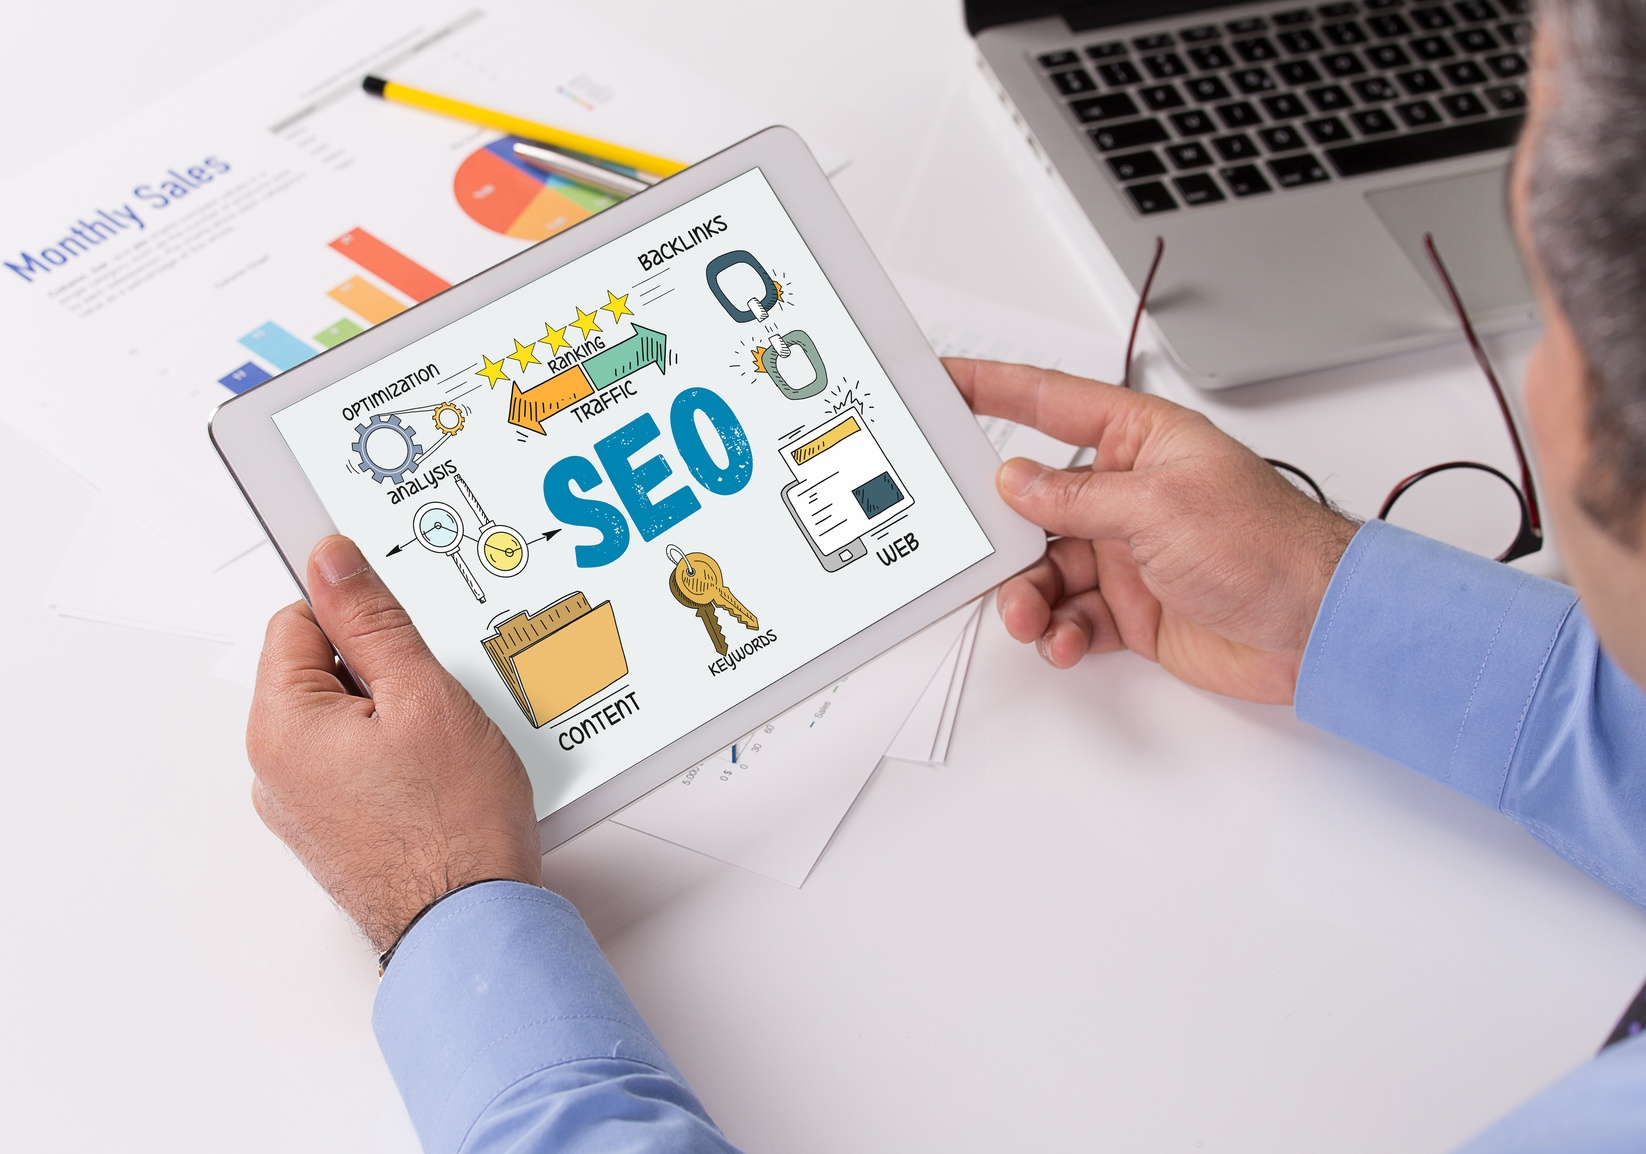 Anatomy of a Search Optimized Webpage